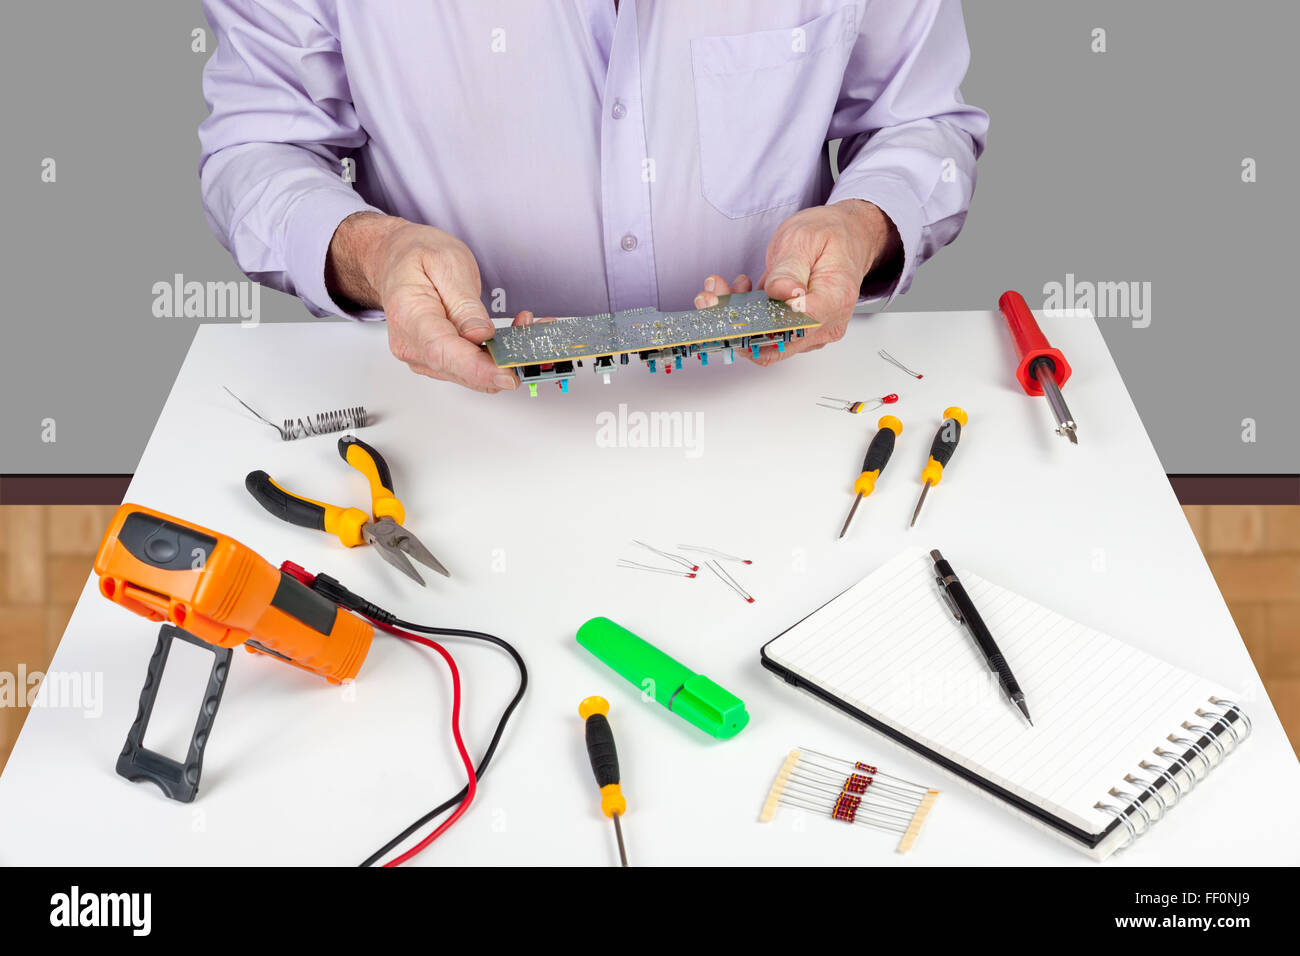 electronic test engineer visually inspecting a faulty printedelectronic test engineer visually inspecting a faulty printed circuit board on his white topped work bench